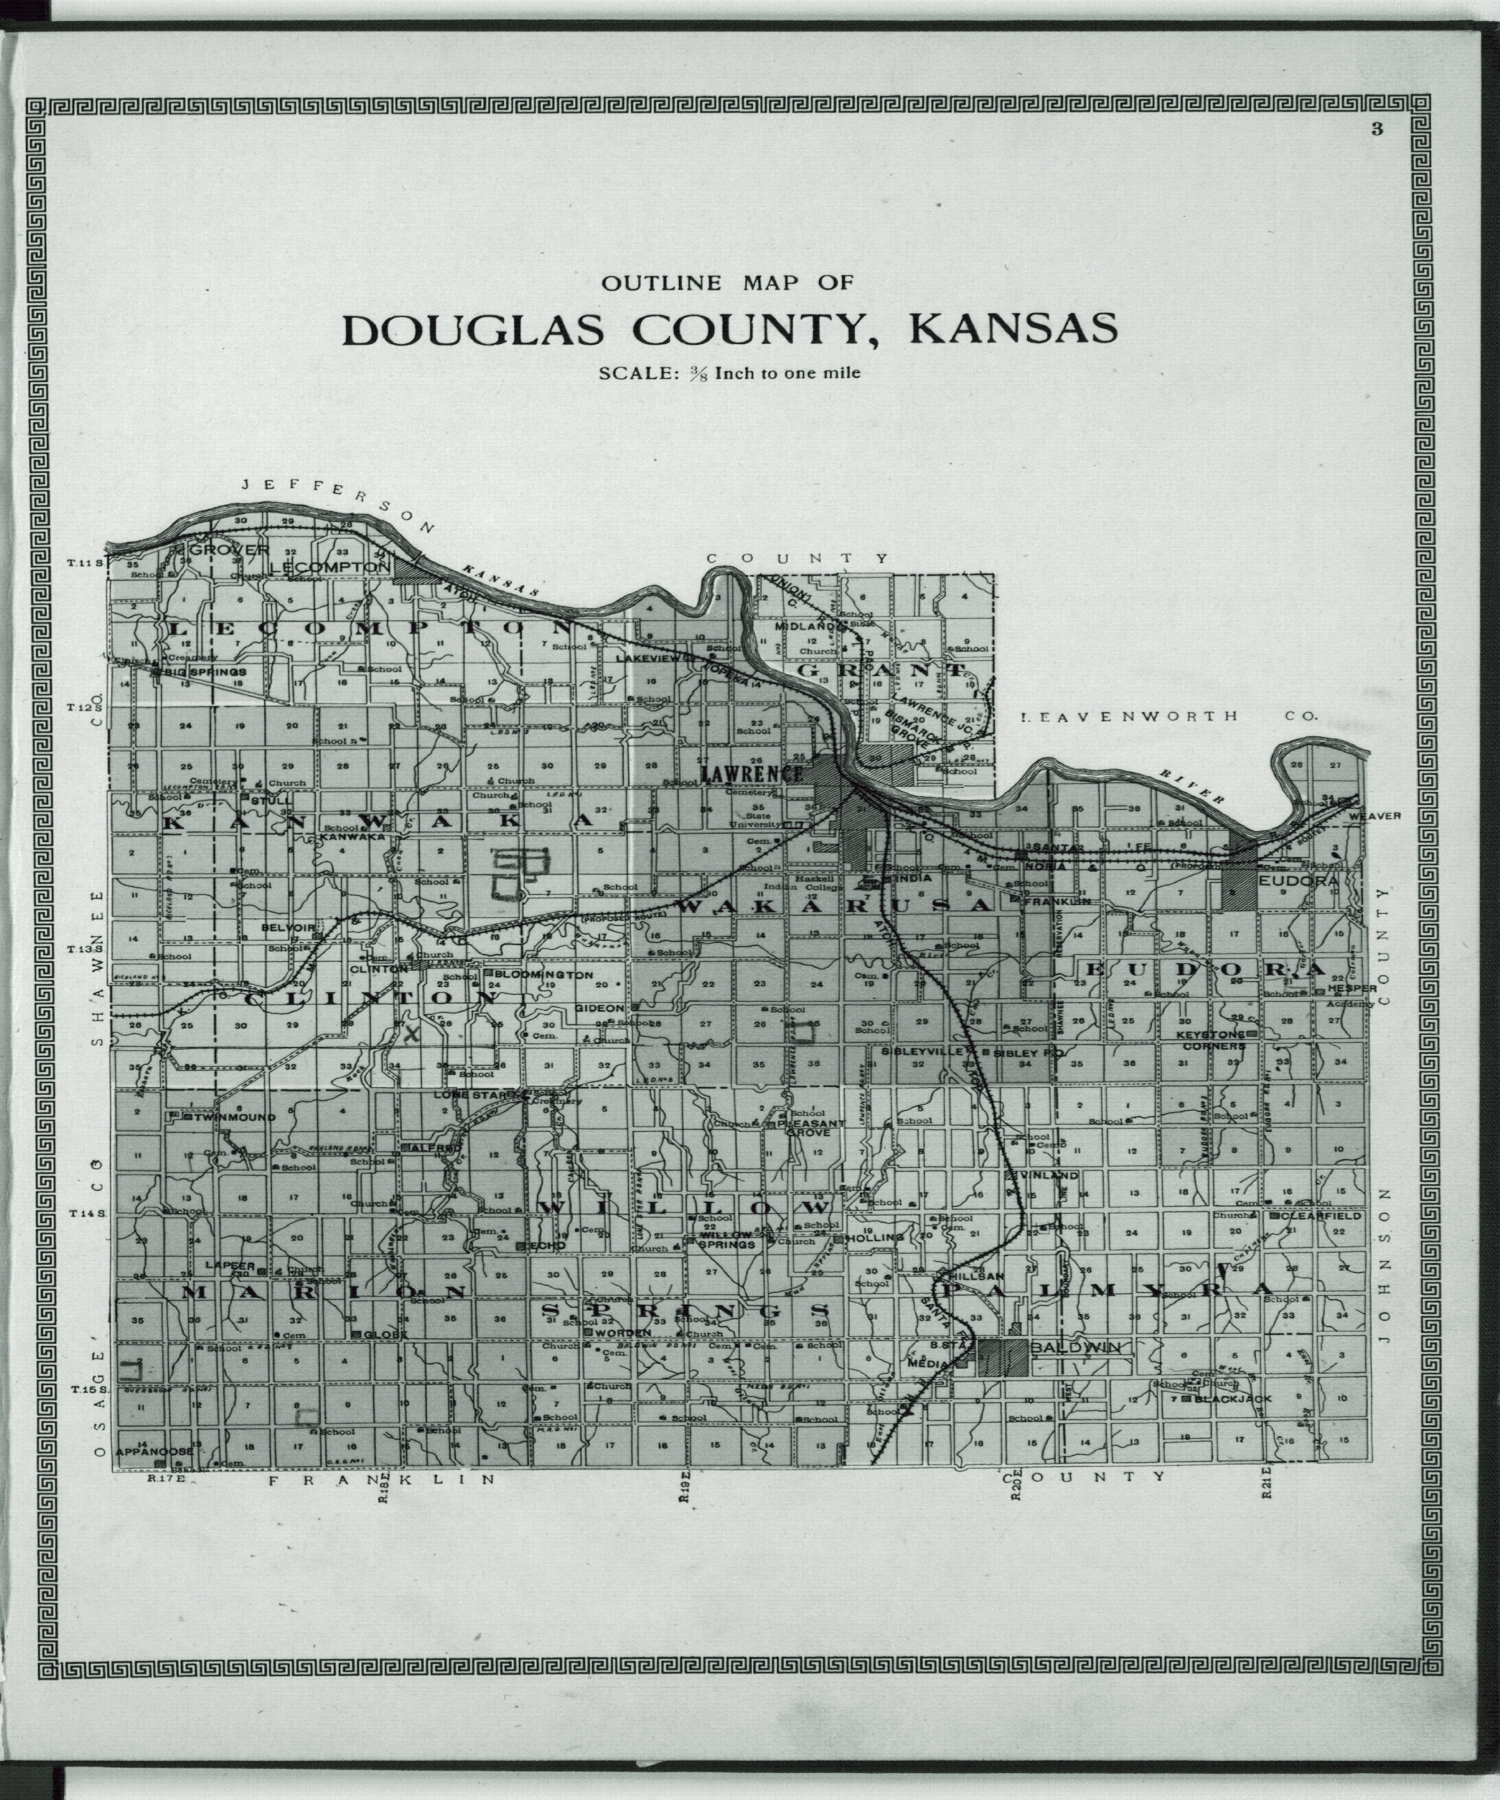 Plat book and complete survey of Douglas County, Kansas - 3